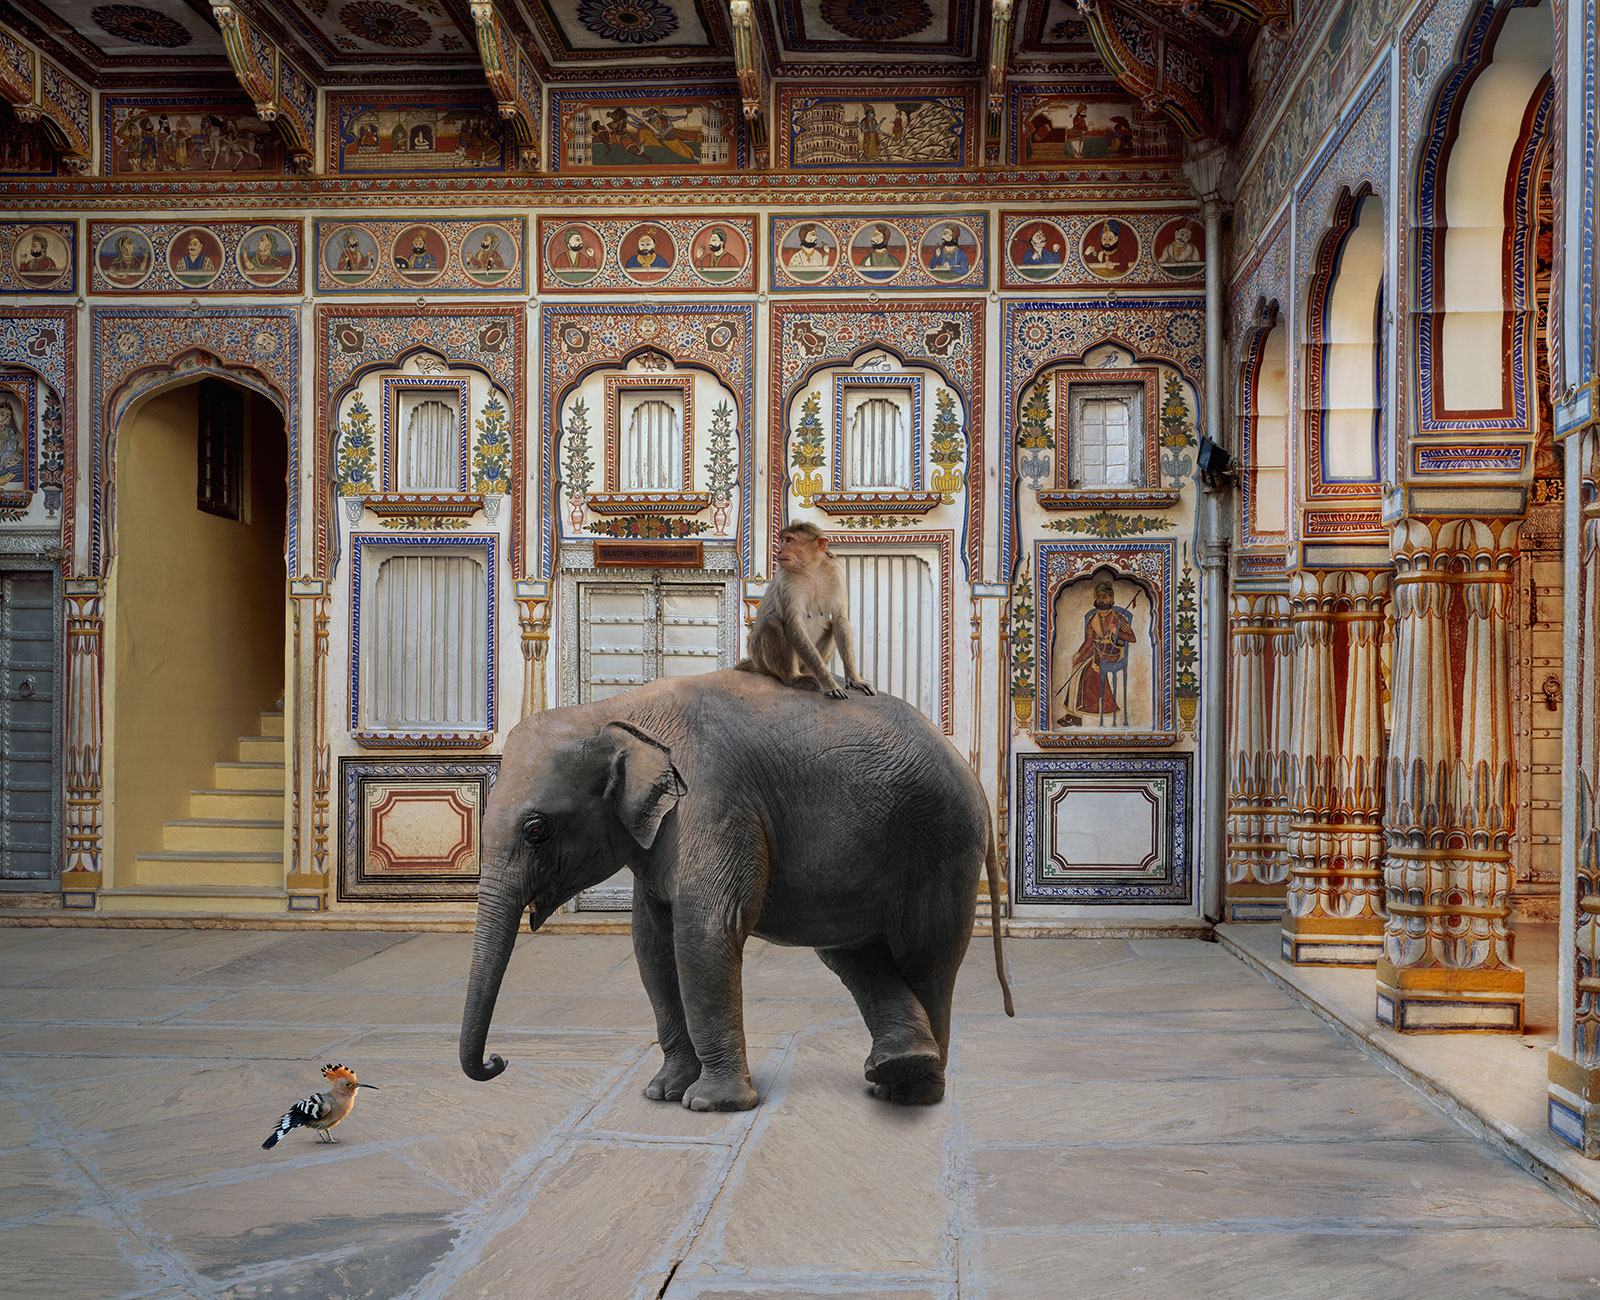 monkey and elephant in ornate Indian temple